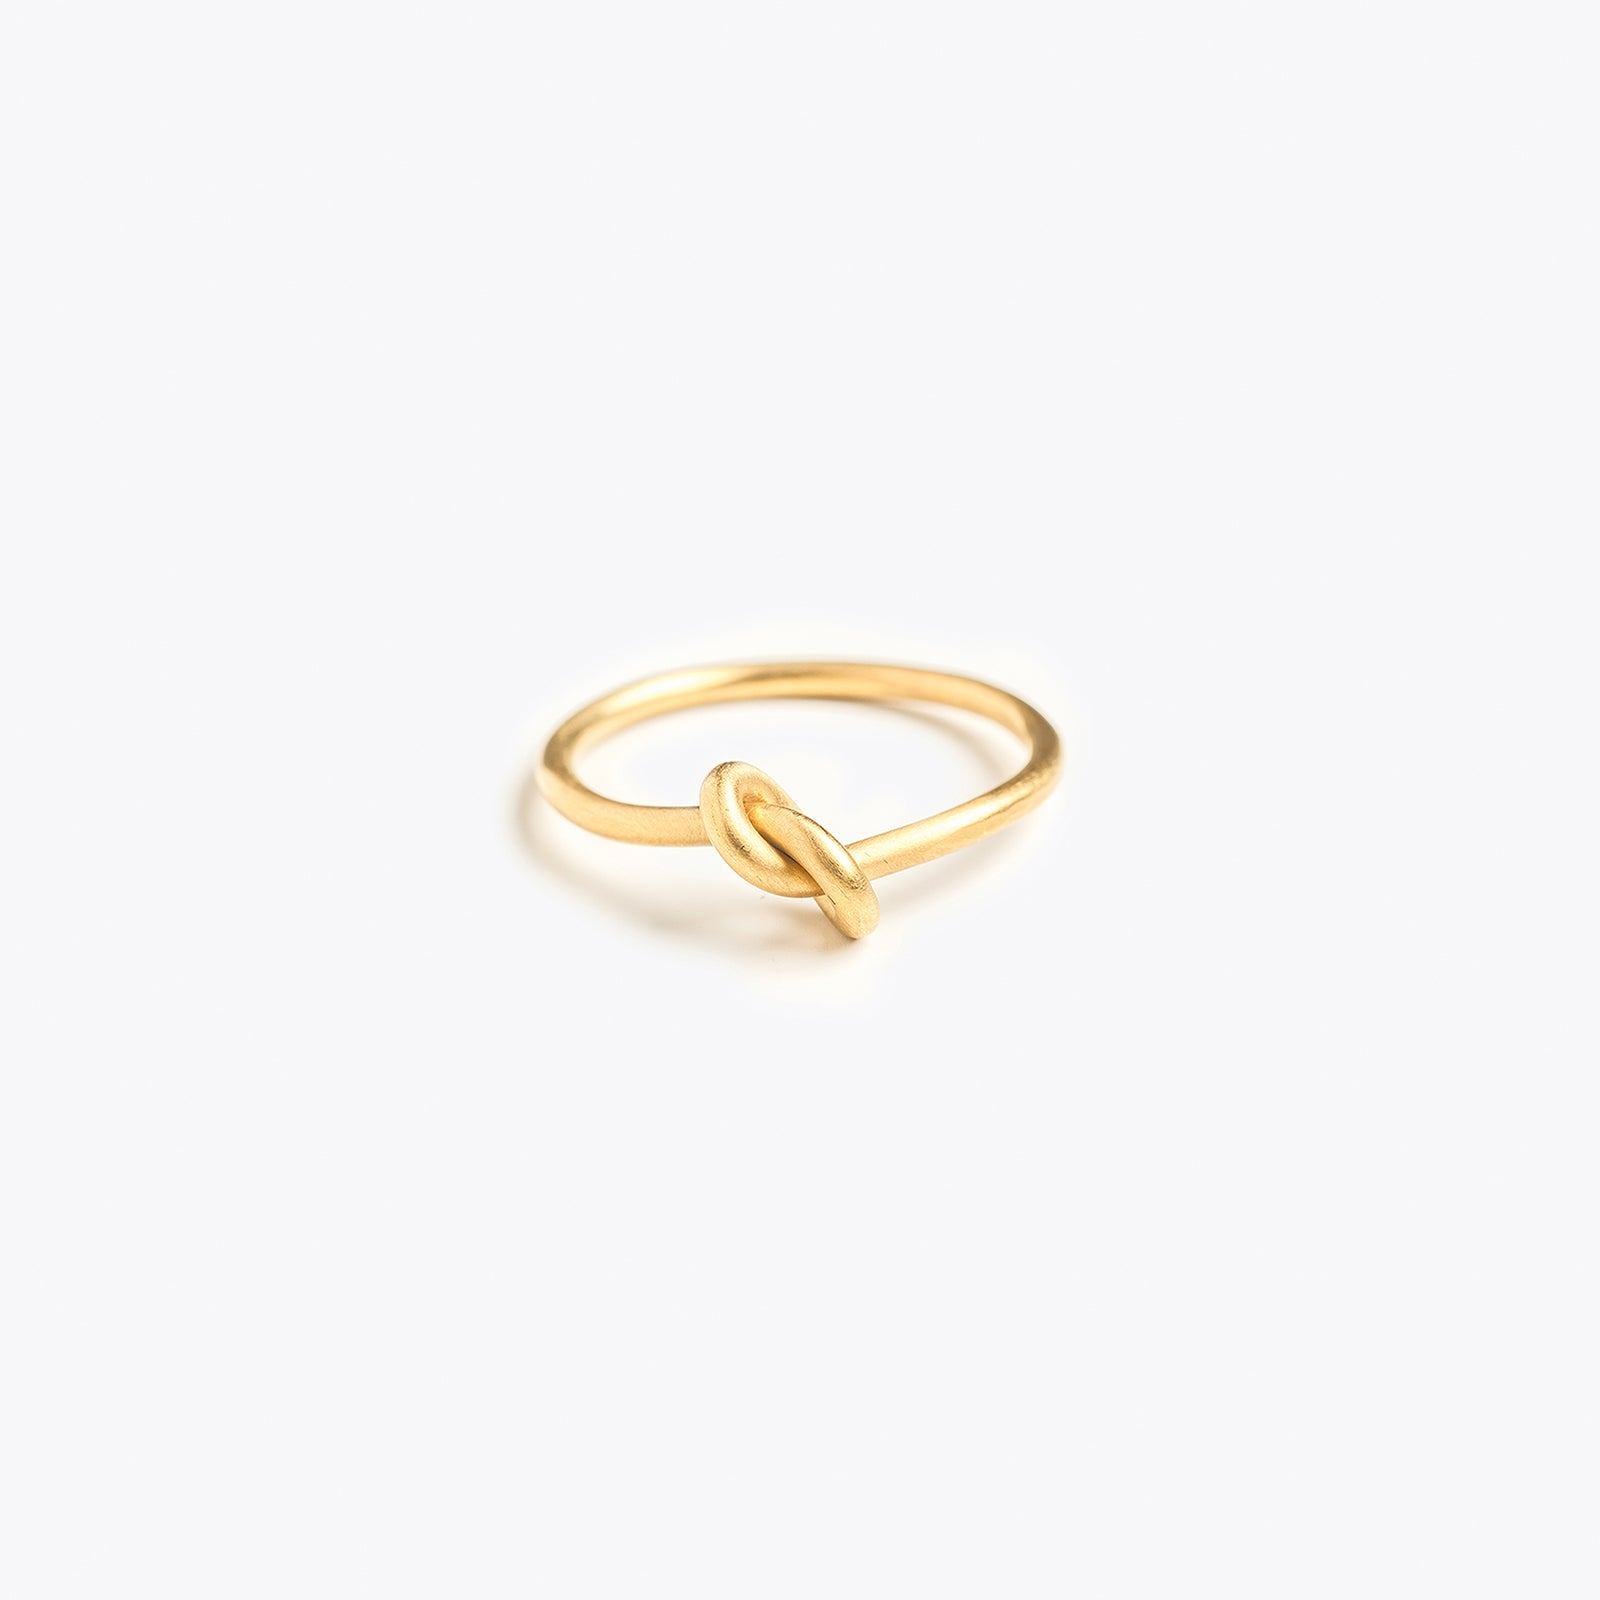 Wanderlust Life gold love knot ring. Ring available in various sizes. Handmade ring in the UK.